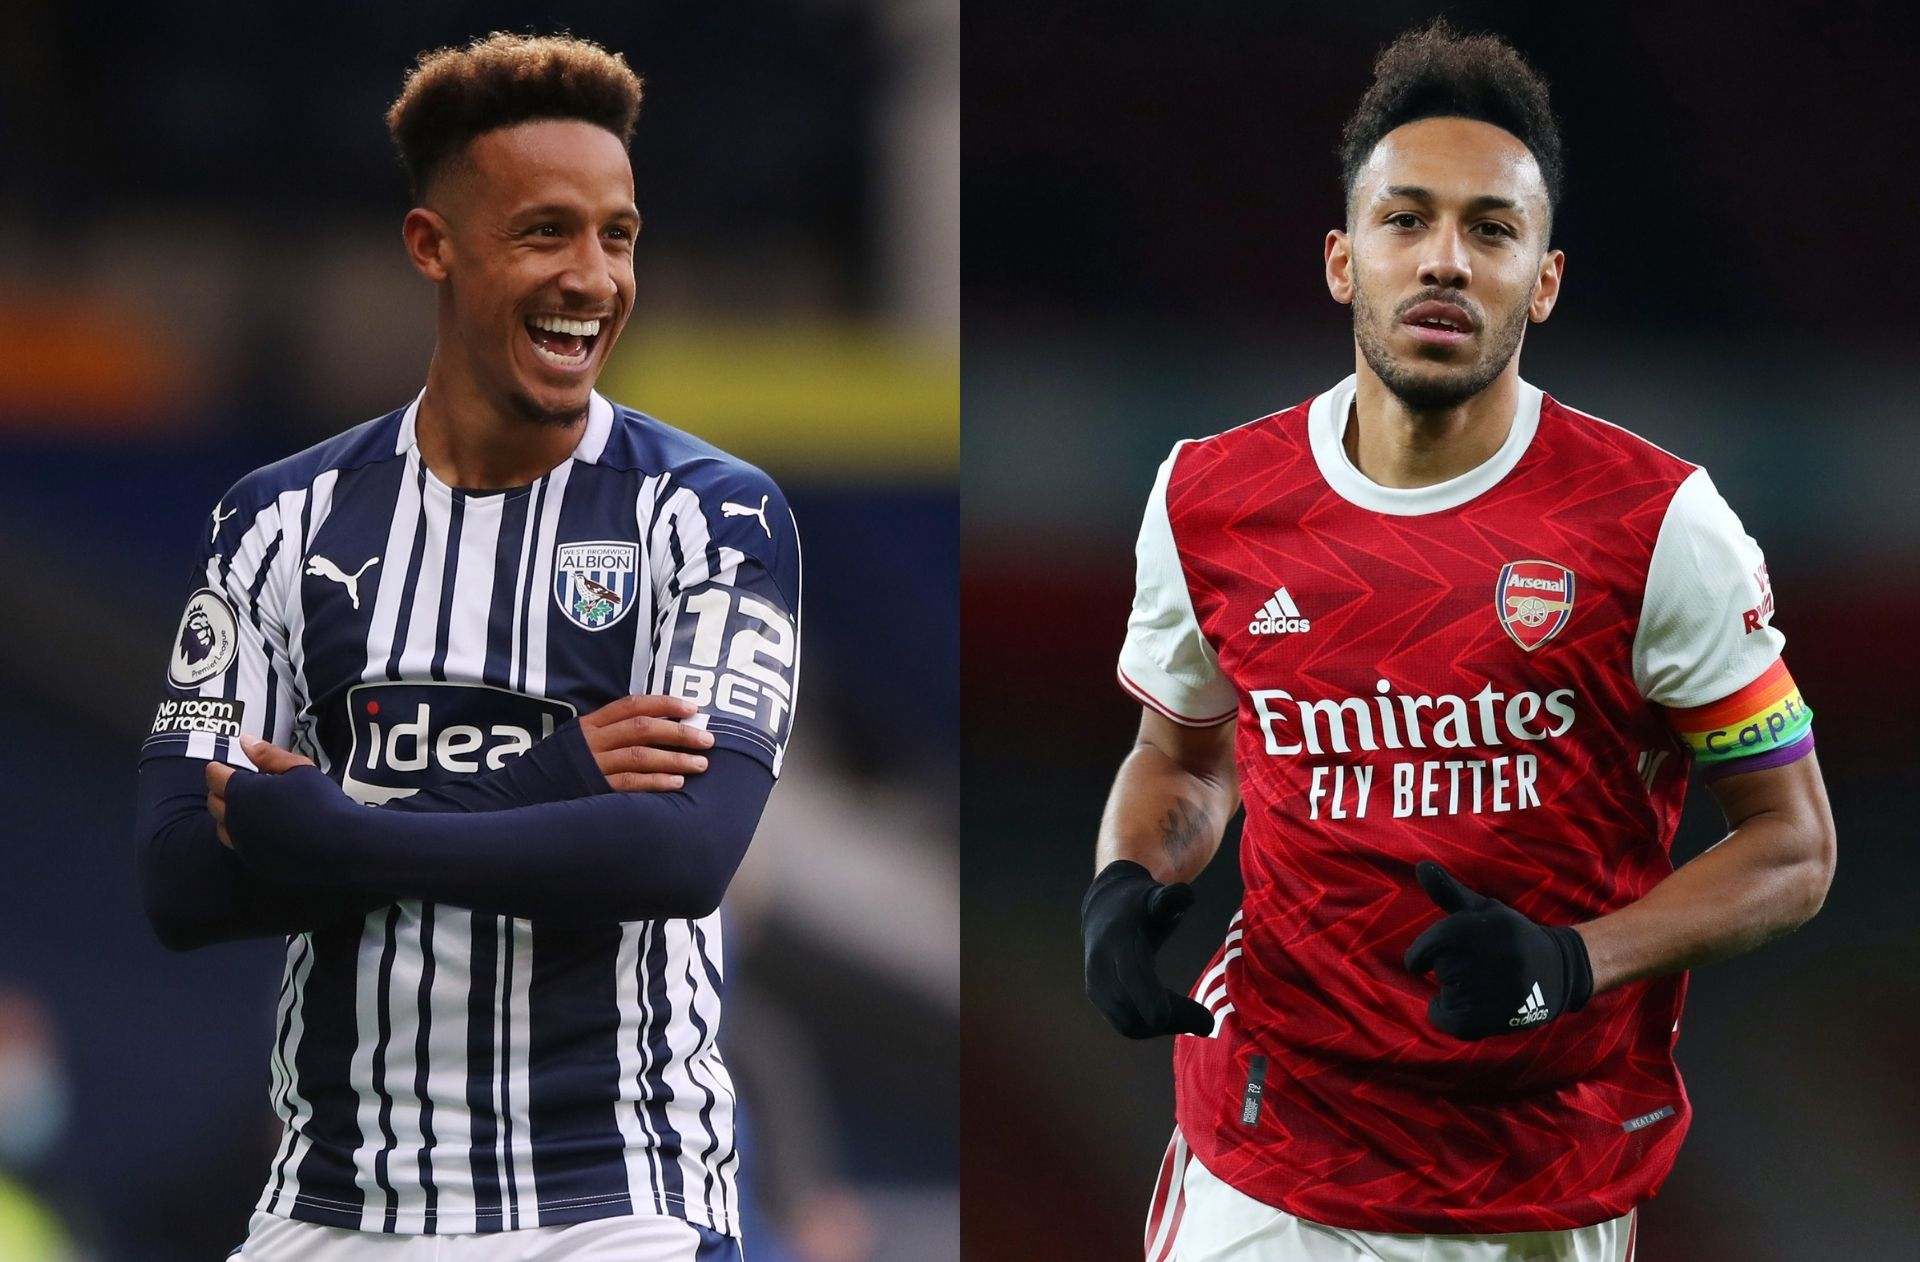 arsenal vs west brom betting odds